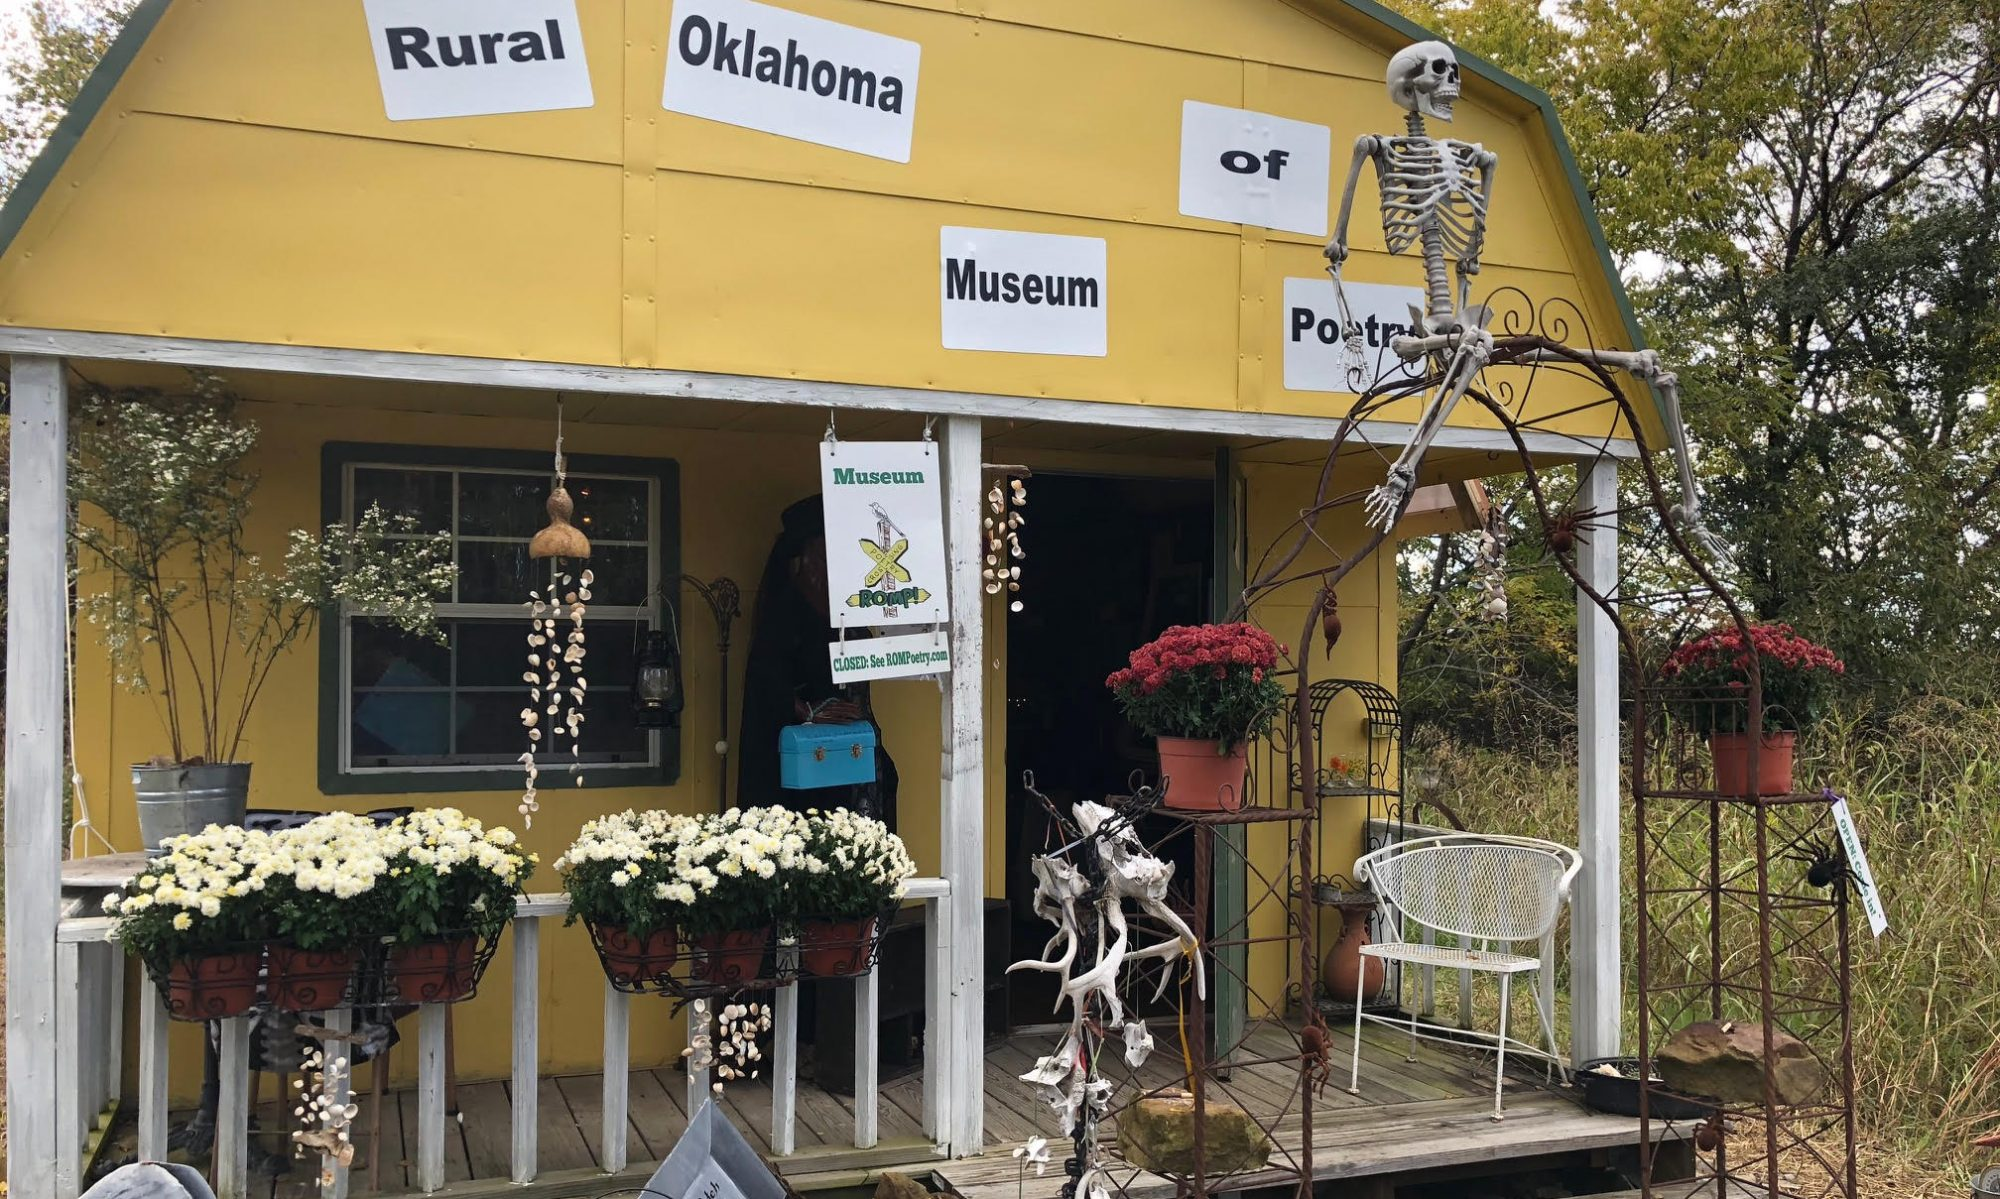 Rural Oklahoma Museum of Poetry